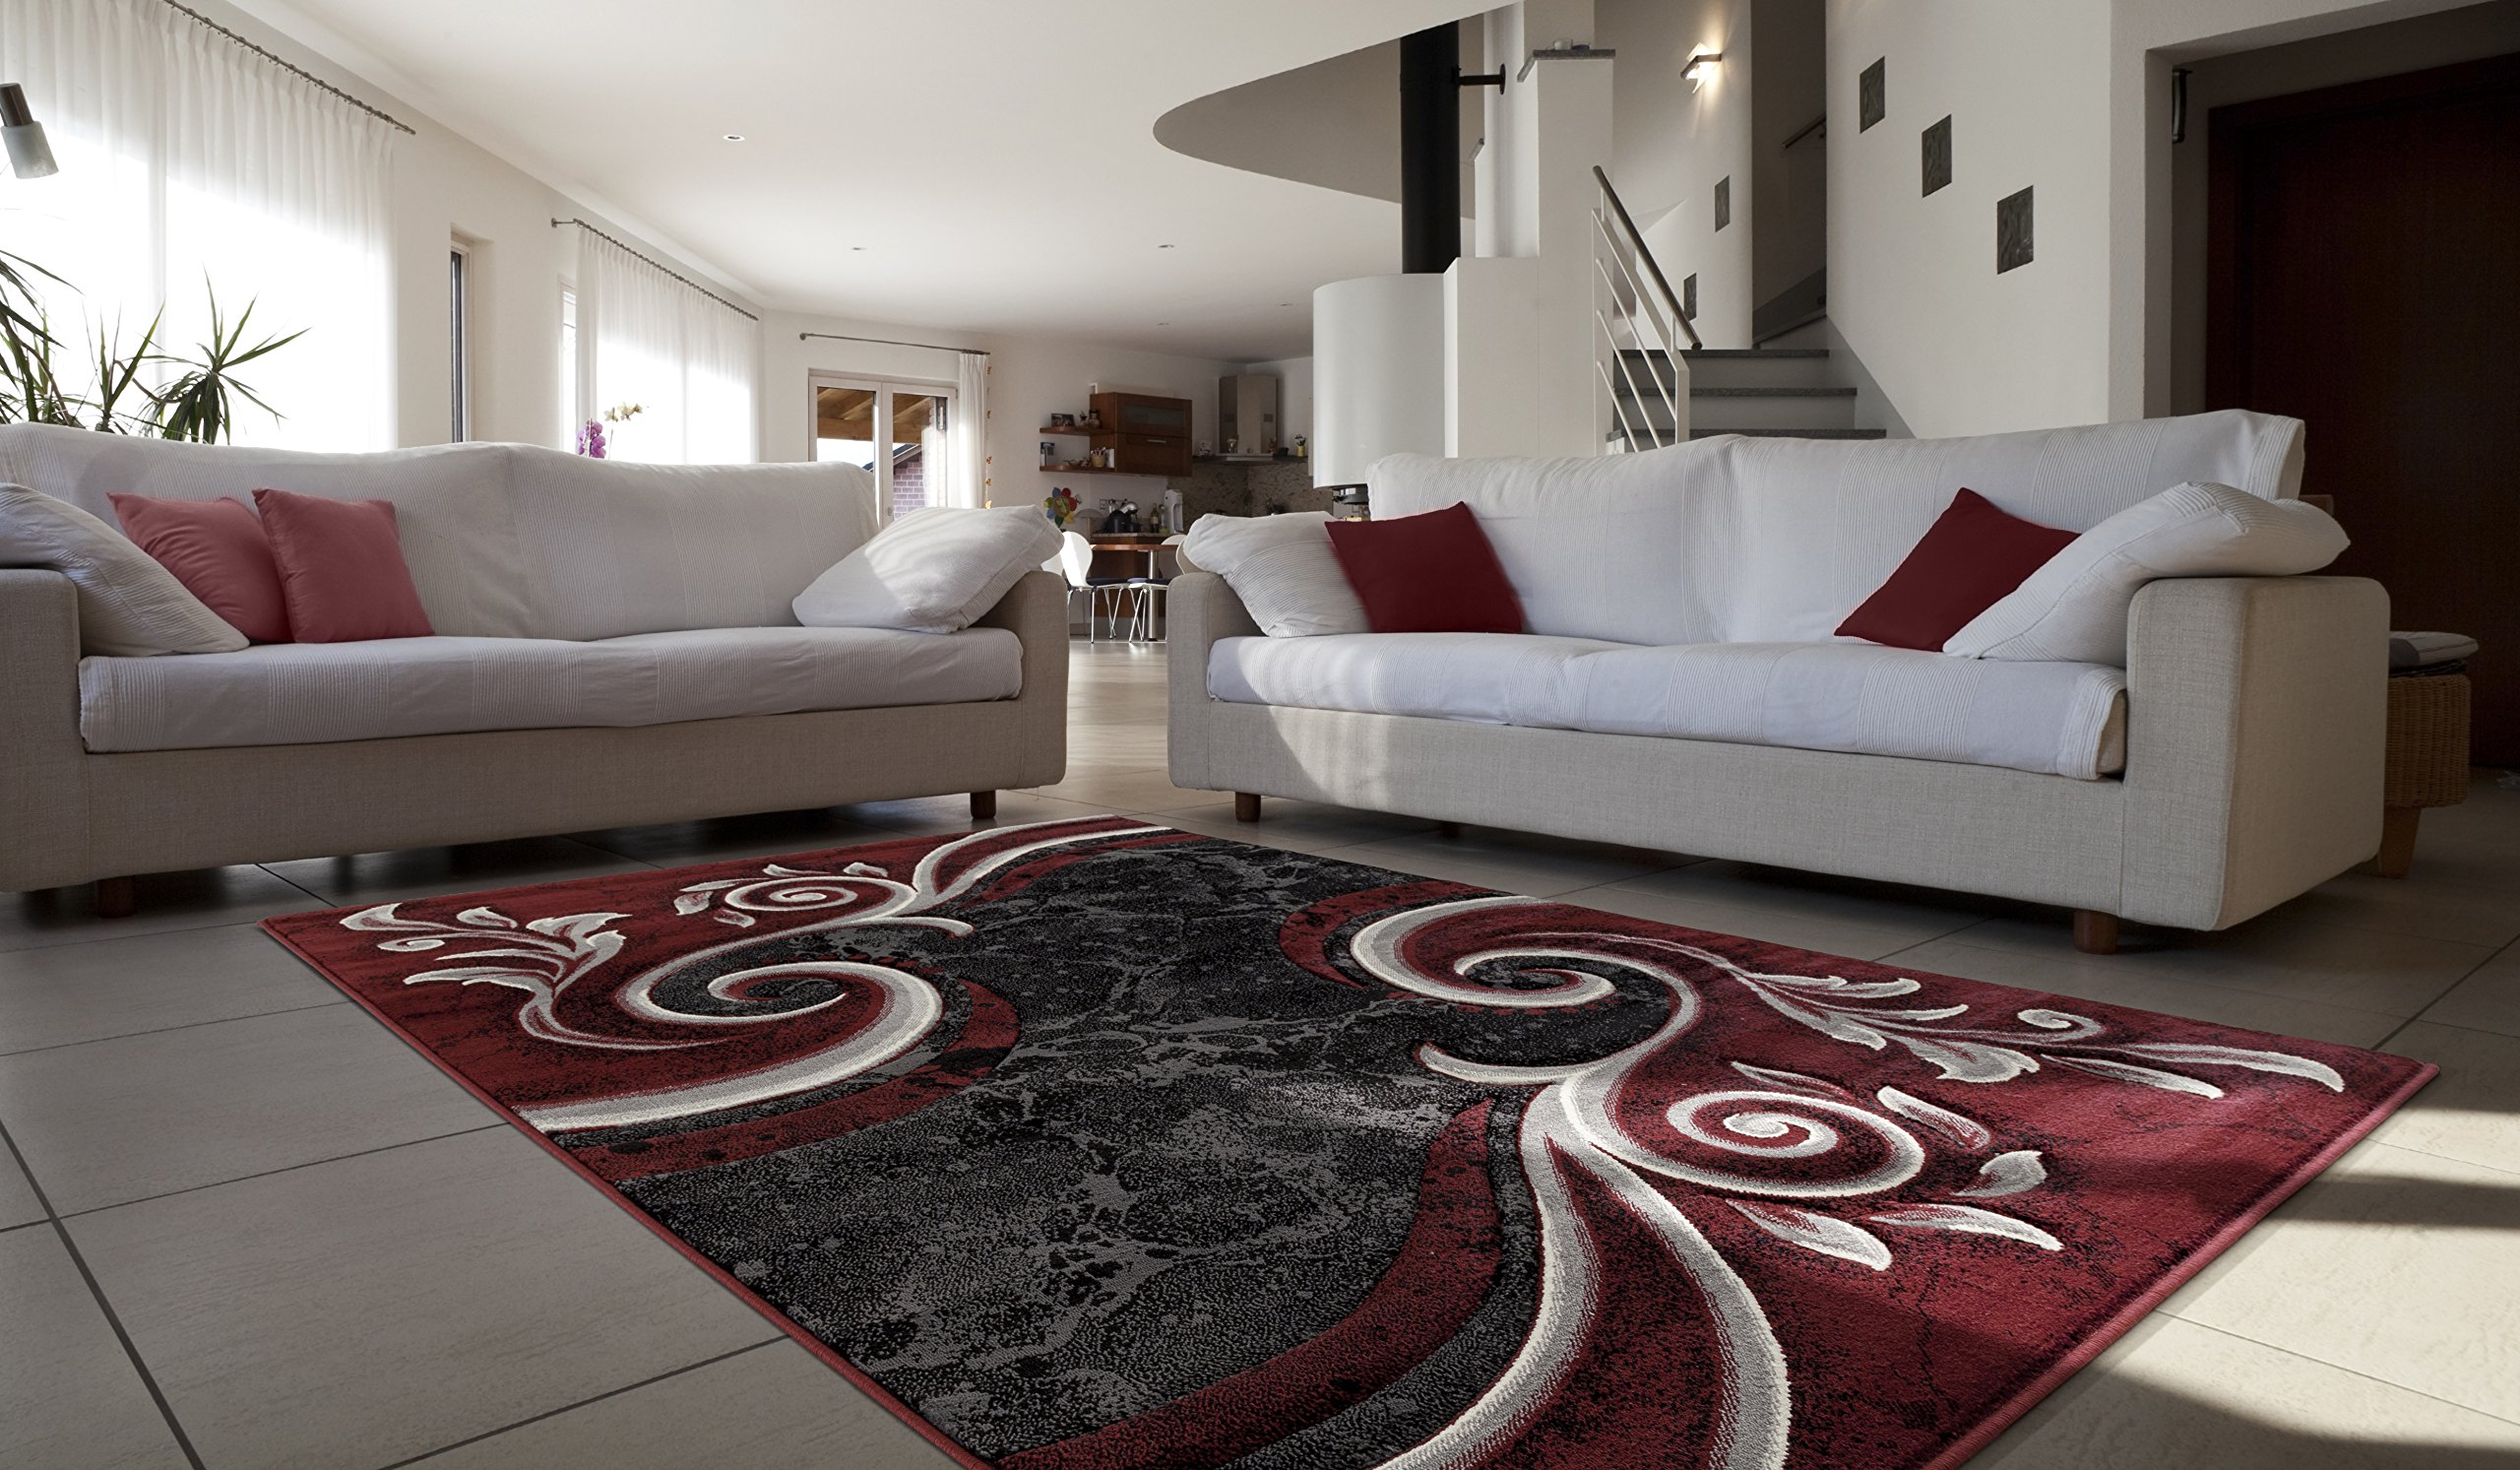 Contemporary Carved Modern Swirl with Floral Design Area Rug Legacy Collection (5' x 7', Burgandy/Black)